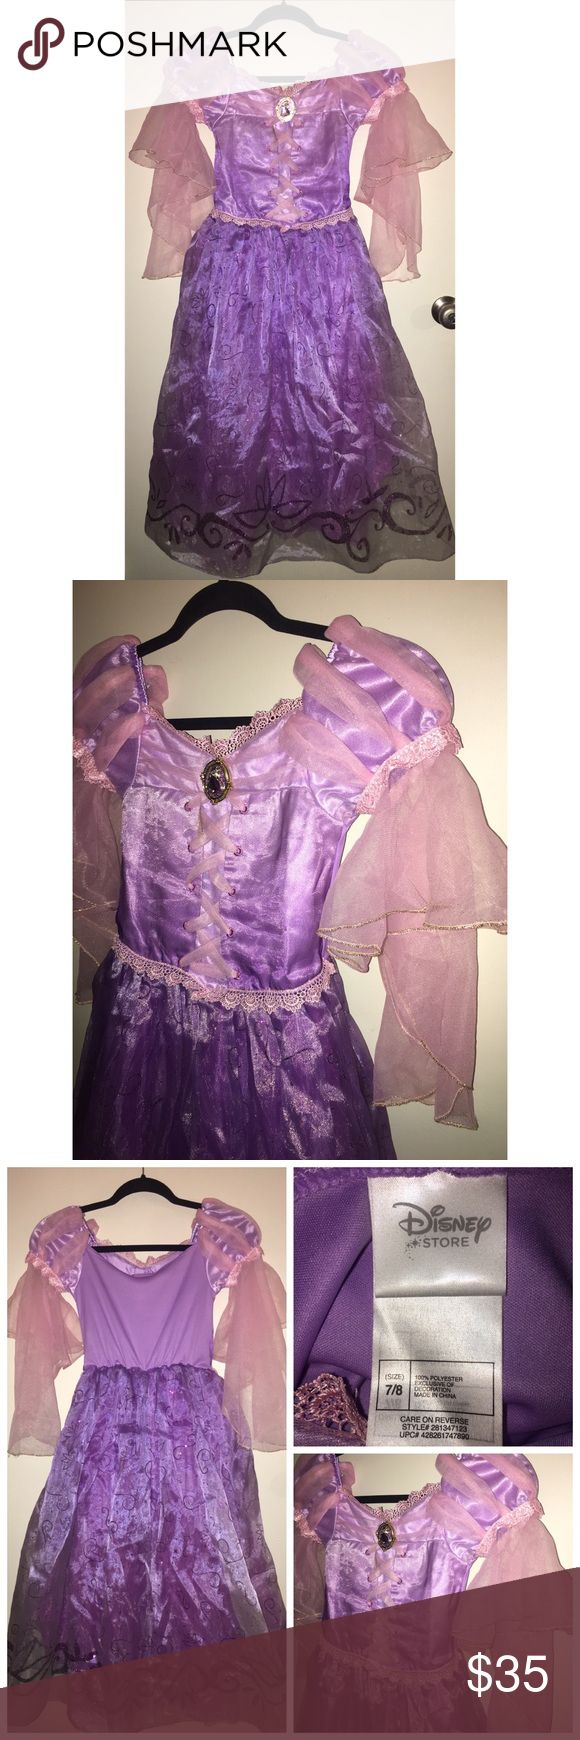 Disney Store Rapunzel Costume Pre•loved Disney Store Rapunzel Costume Size 7/8 Glitter accents and ruffled mesh glitter trim at top and waist Inset panel with faux lace-up satin ribbons over mesh and acetate Paned puff sleeves of satin and golden mesh Long mesh sleeve with ruffled glitter trim at wrist Patterned satin overskirt with glitter-trimmed hem brooch with clear domed cover and jeweled accents Stretch fabric back EUC (keep in mind it's been played in) No stains or rips 9817P Disney…